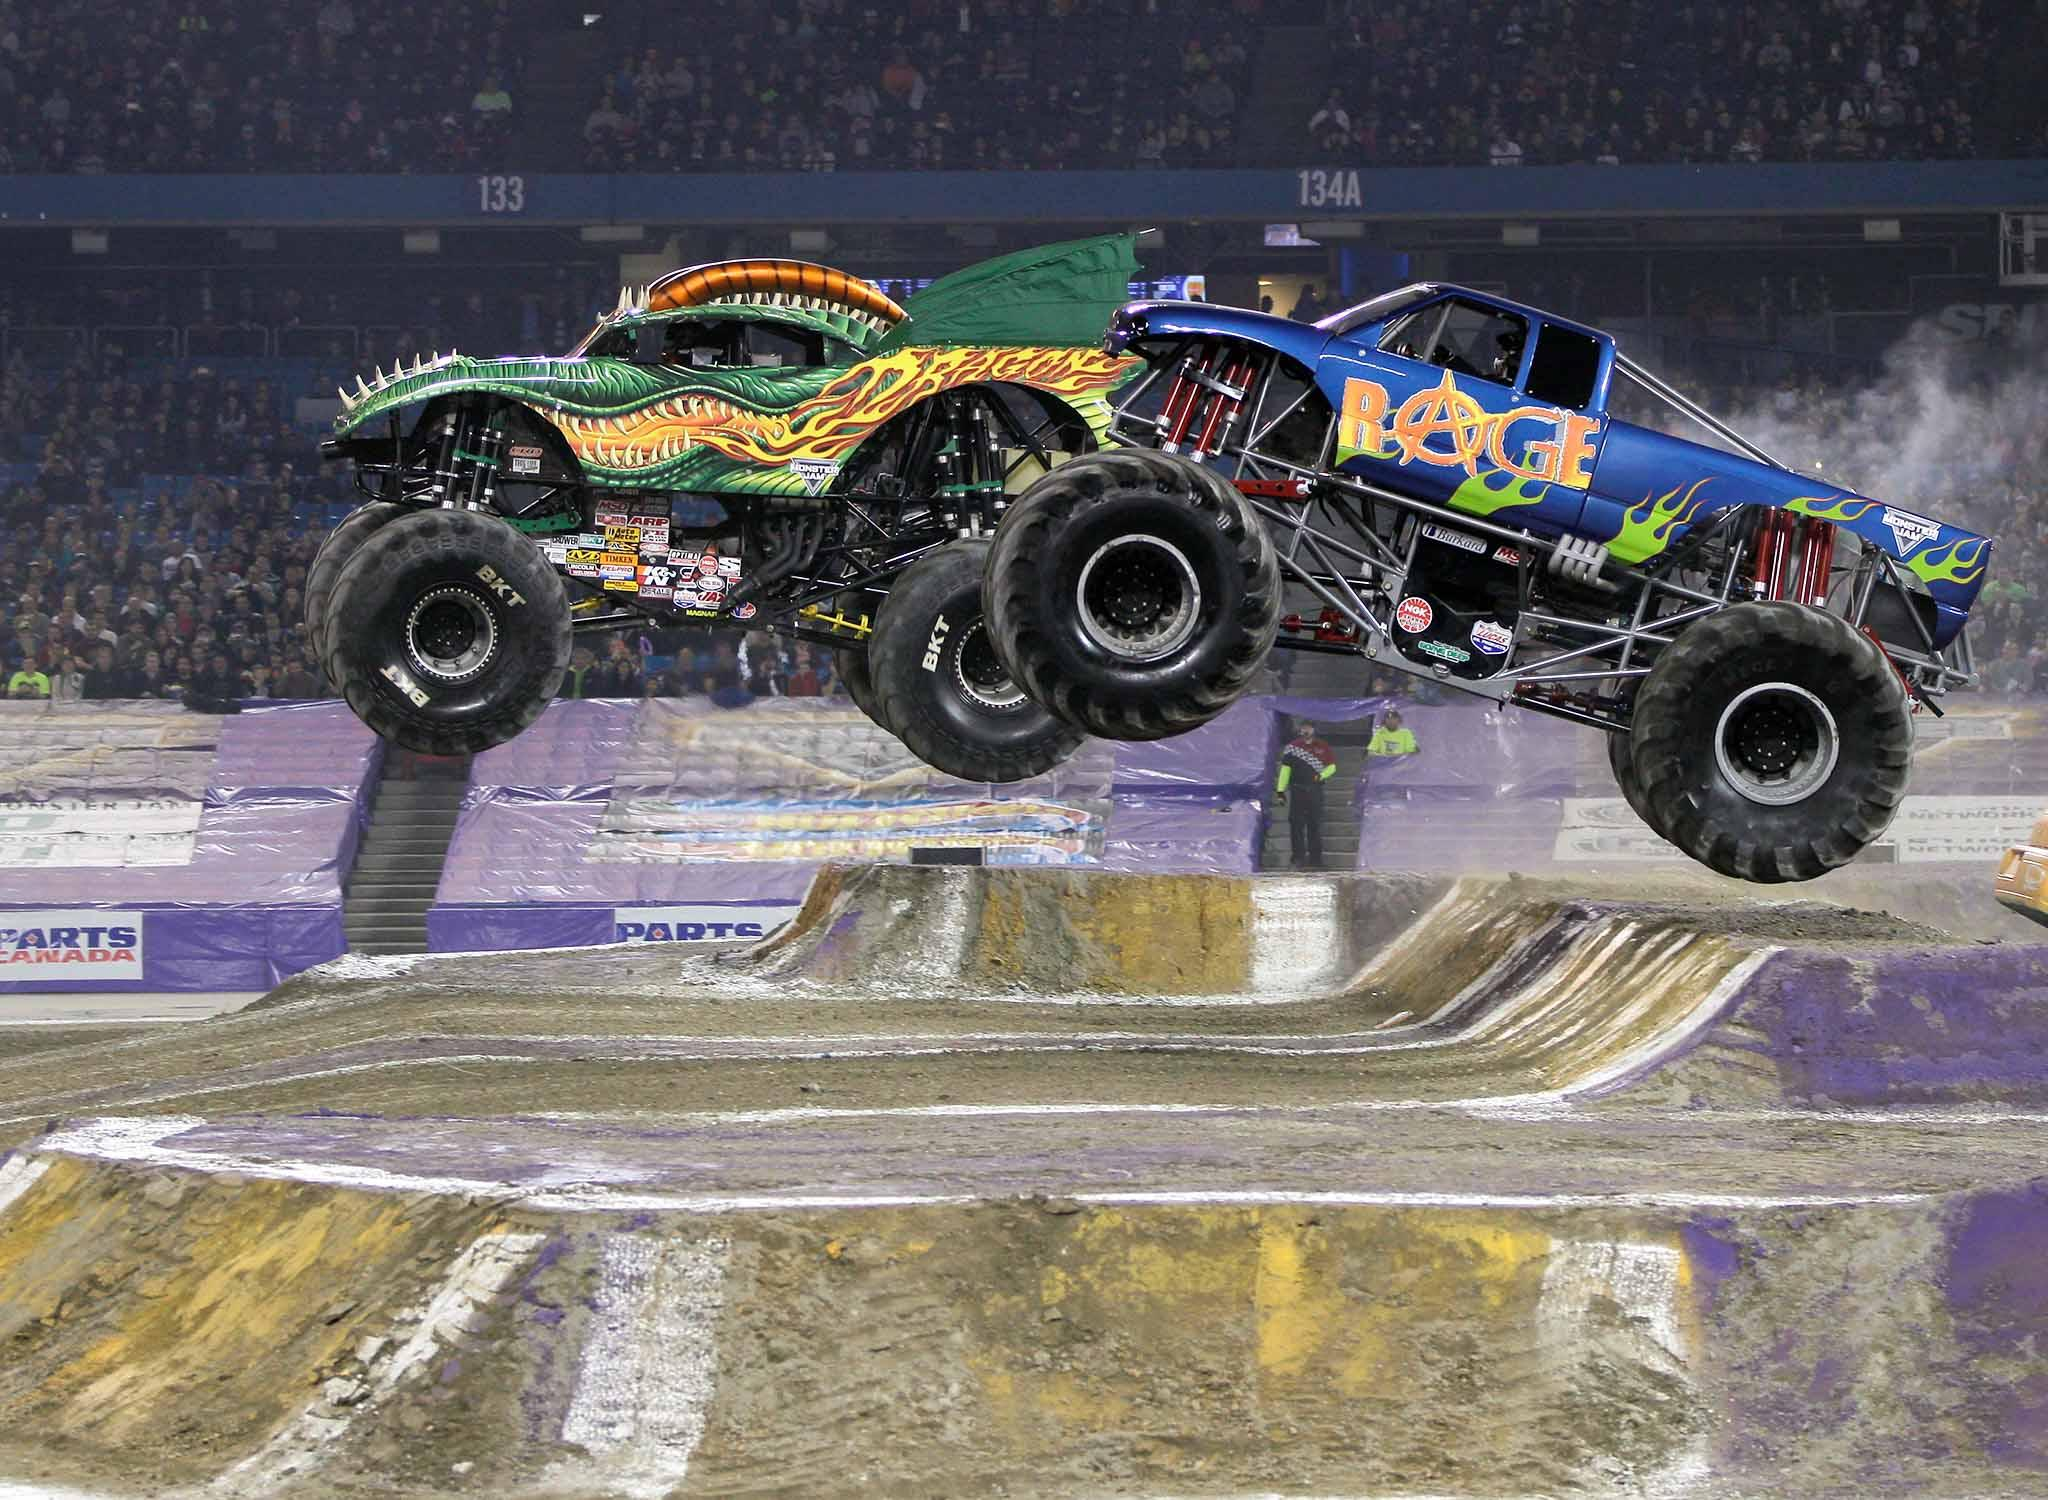 Image C/O MonsterJam.com